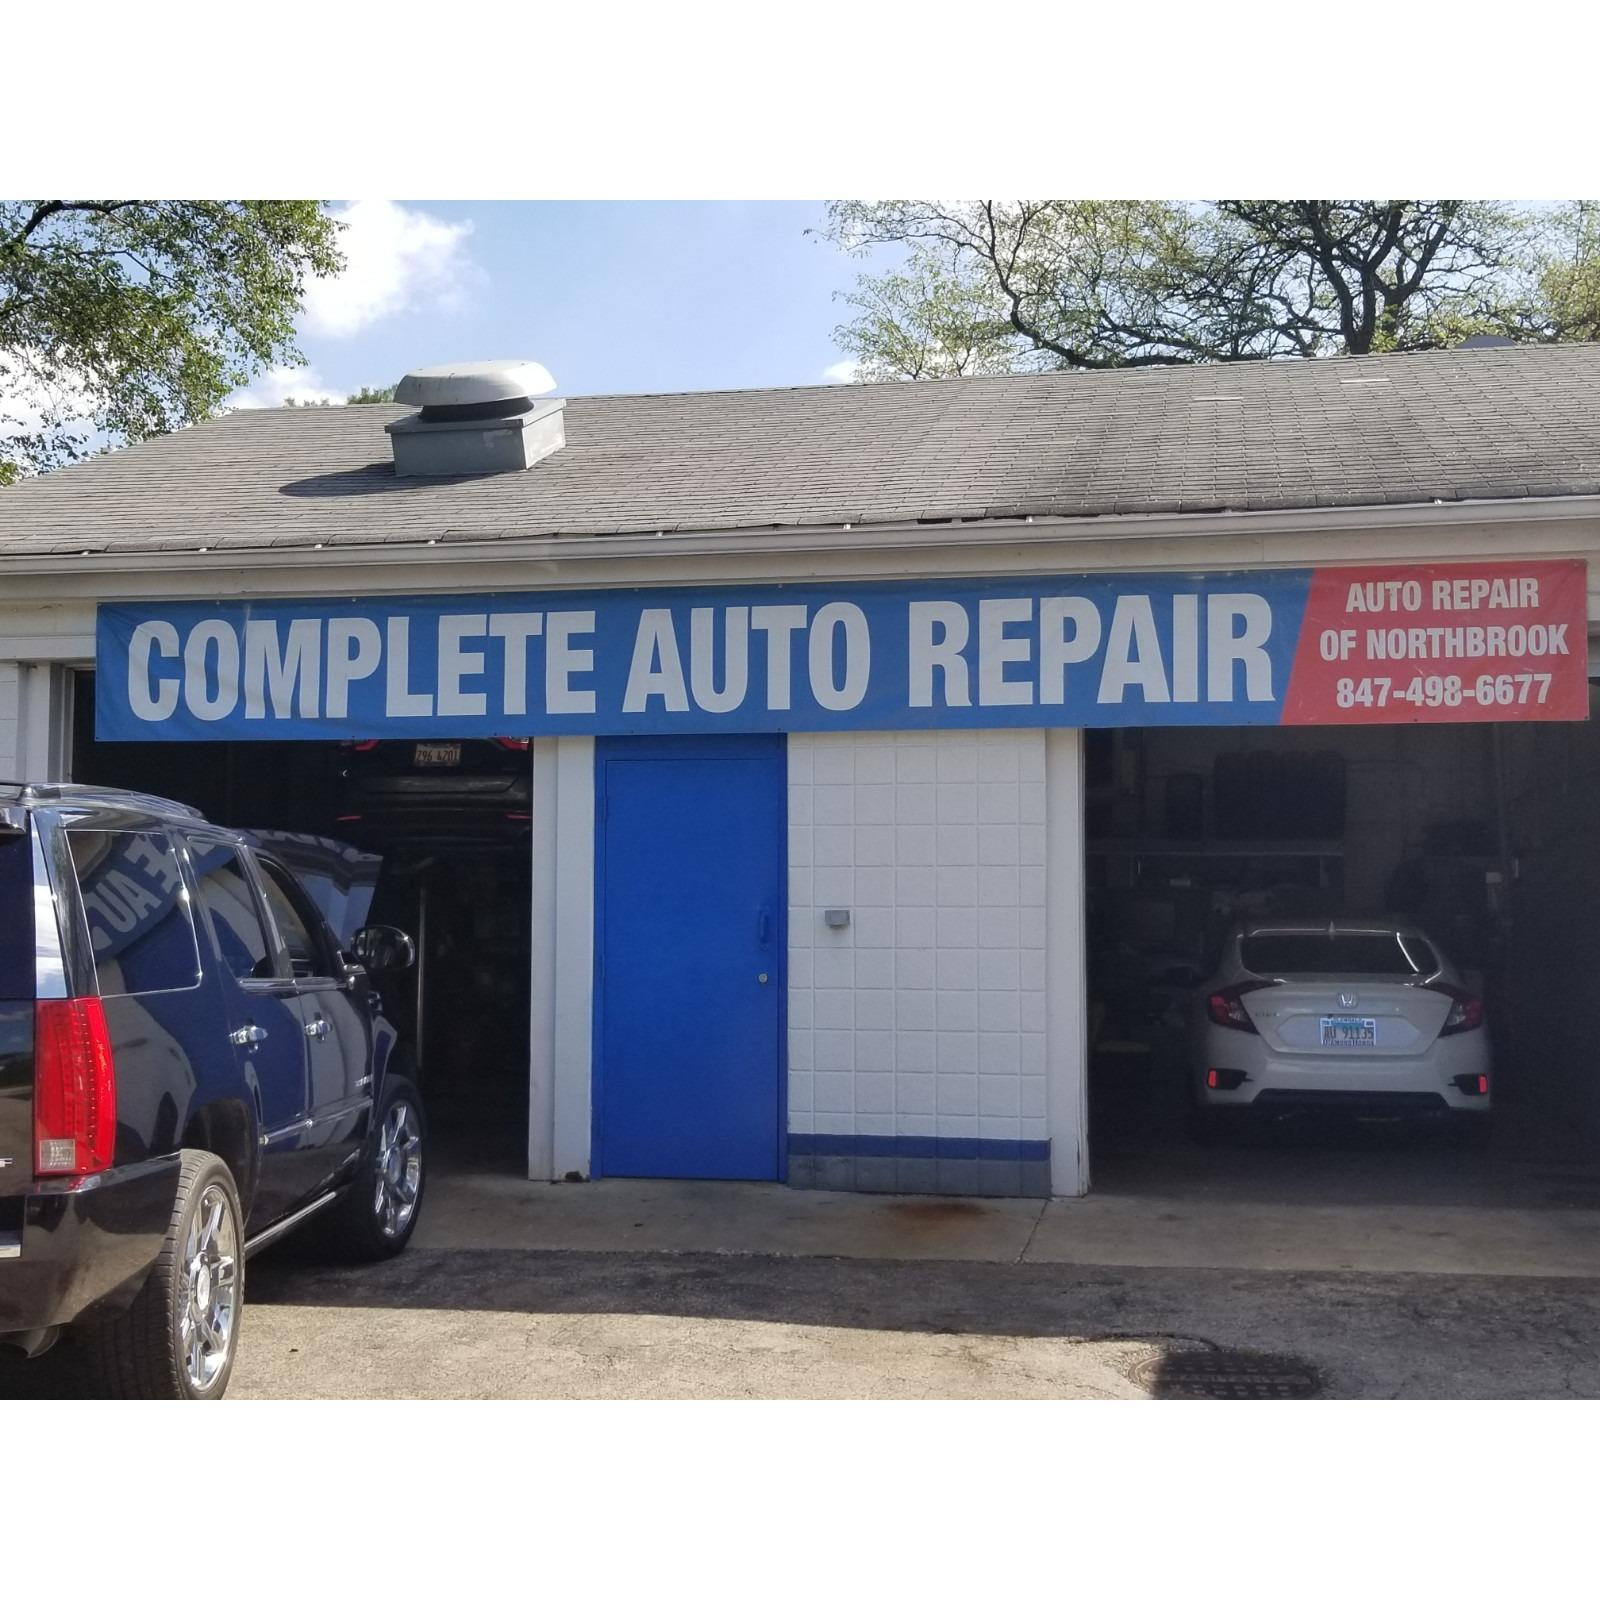 Auto Repair of Northbrook image 6